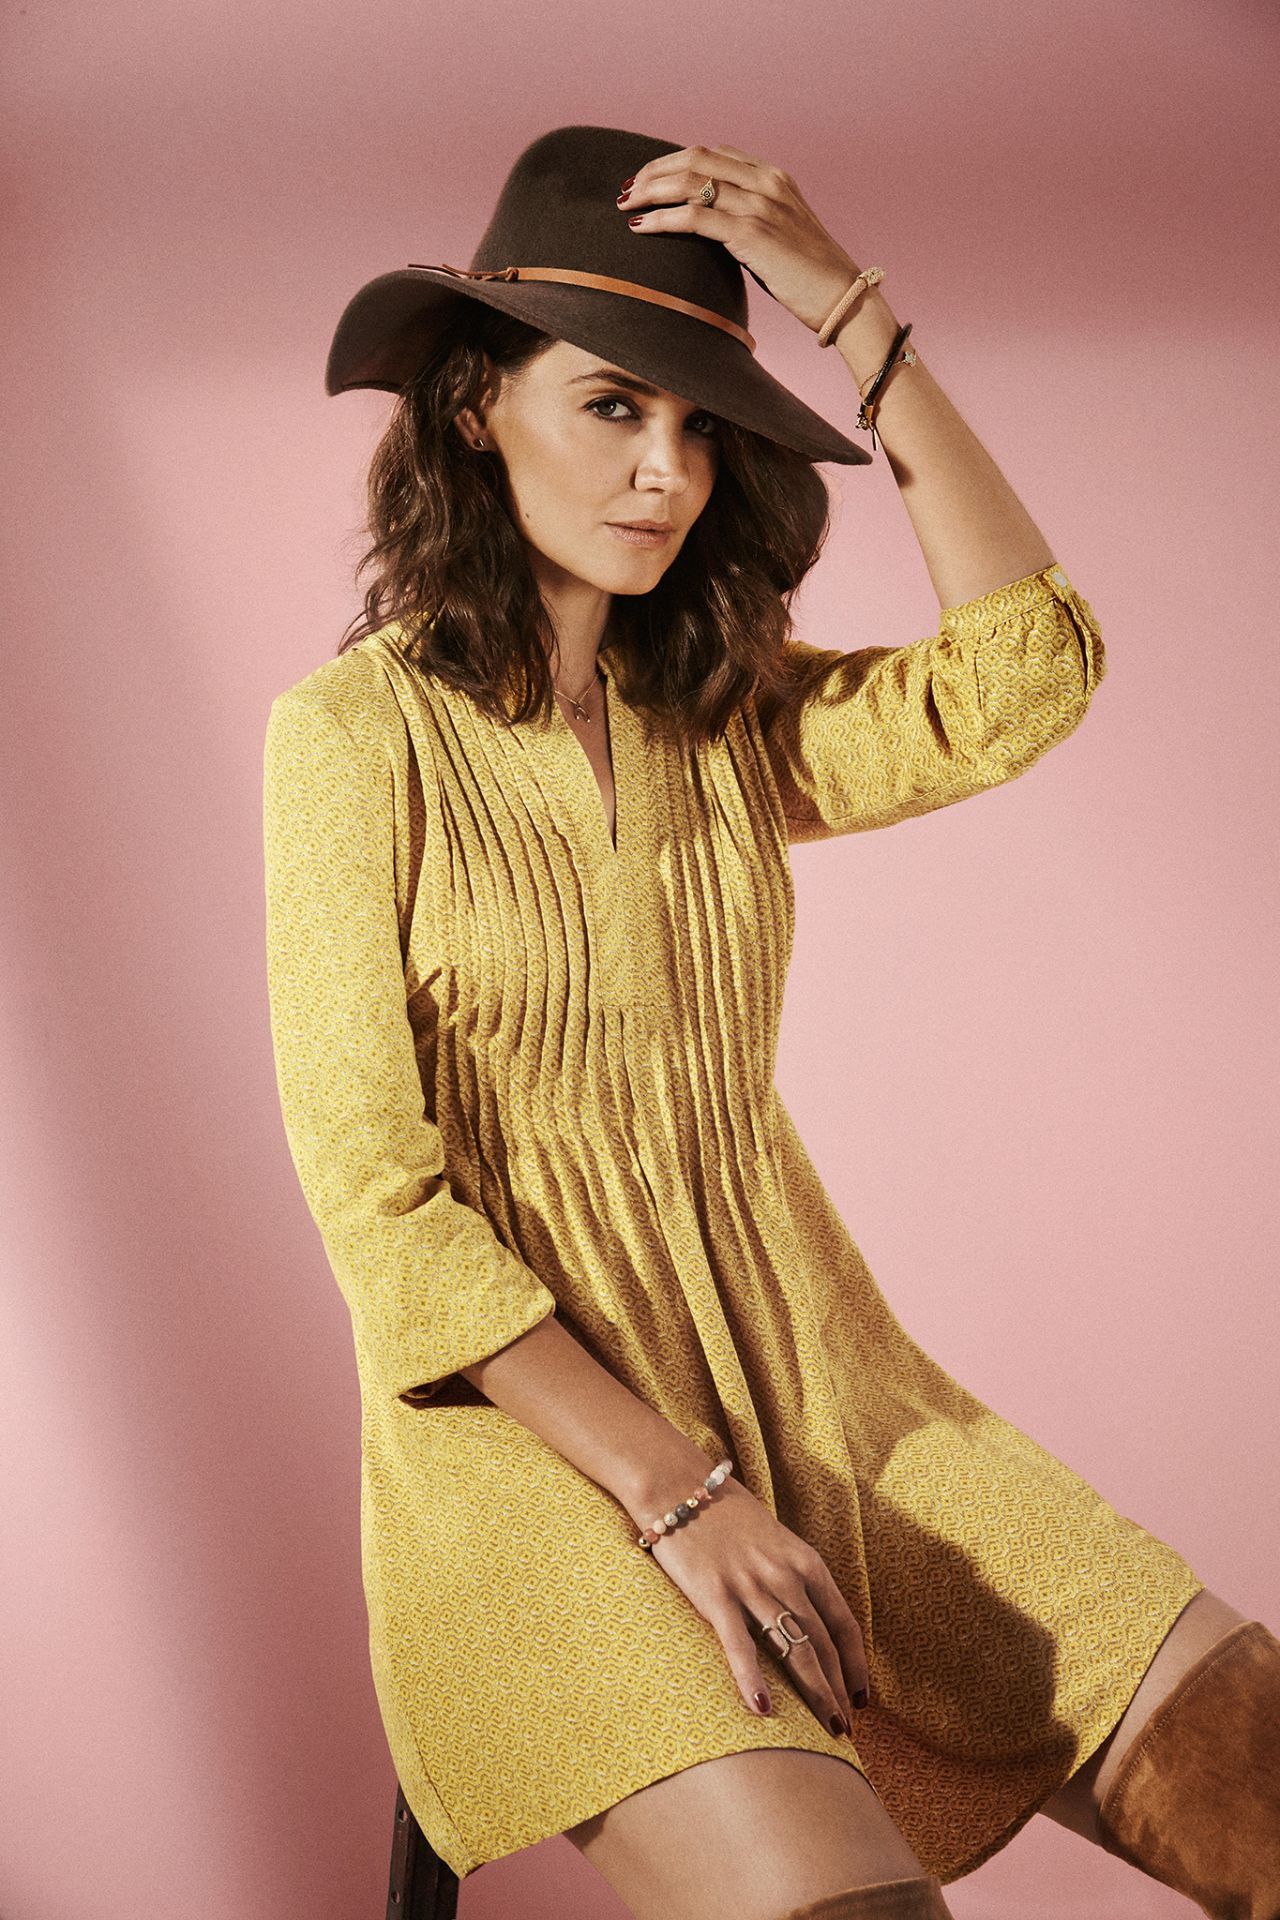 Katie Holmes – Photoshoot for Refinery29, September 2015